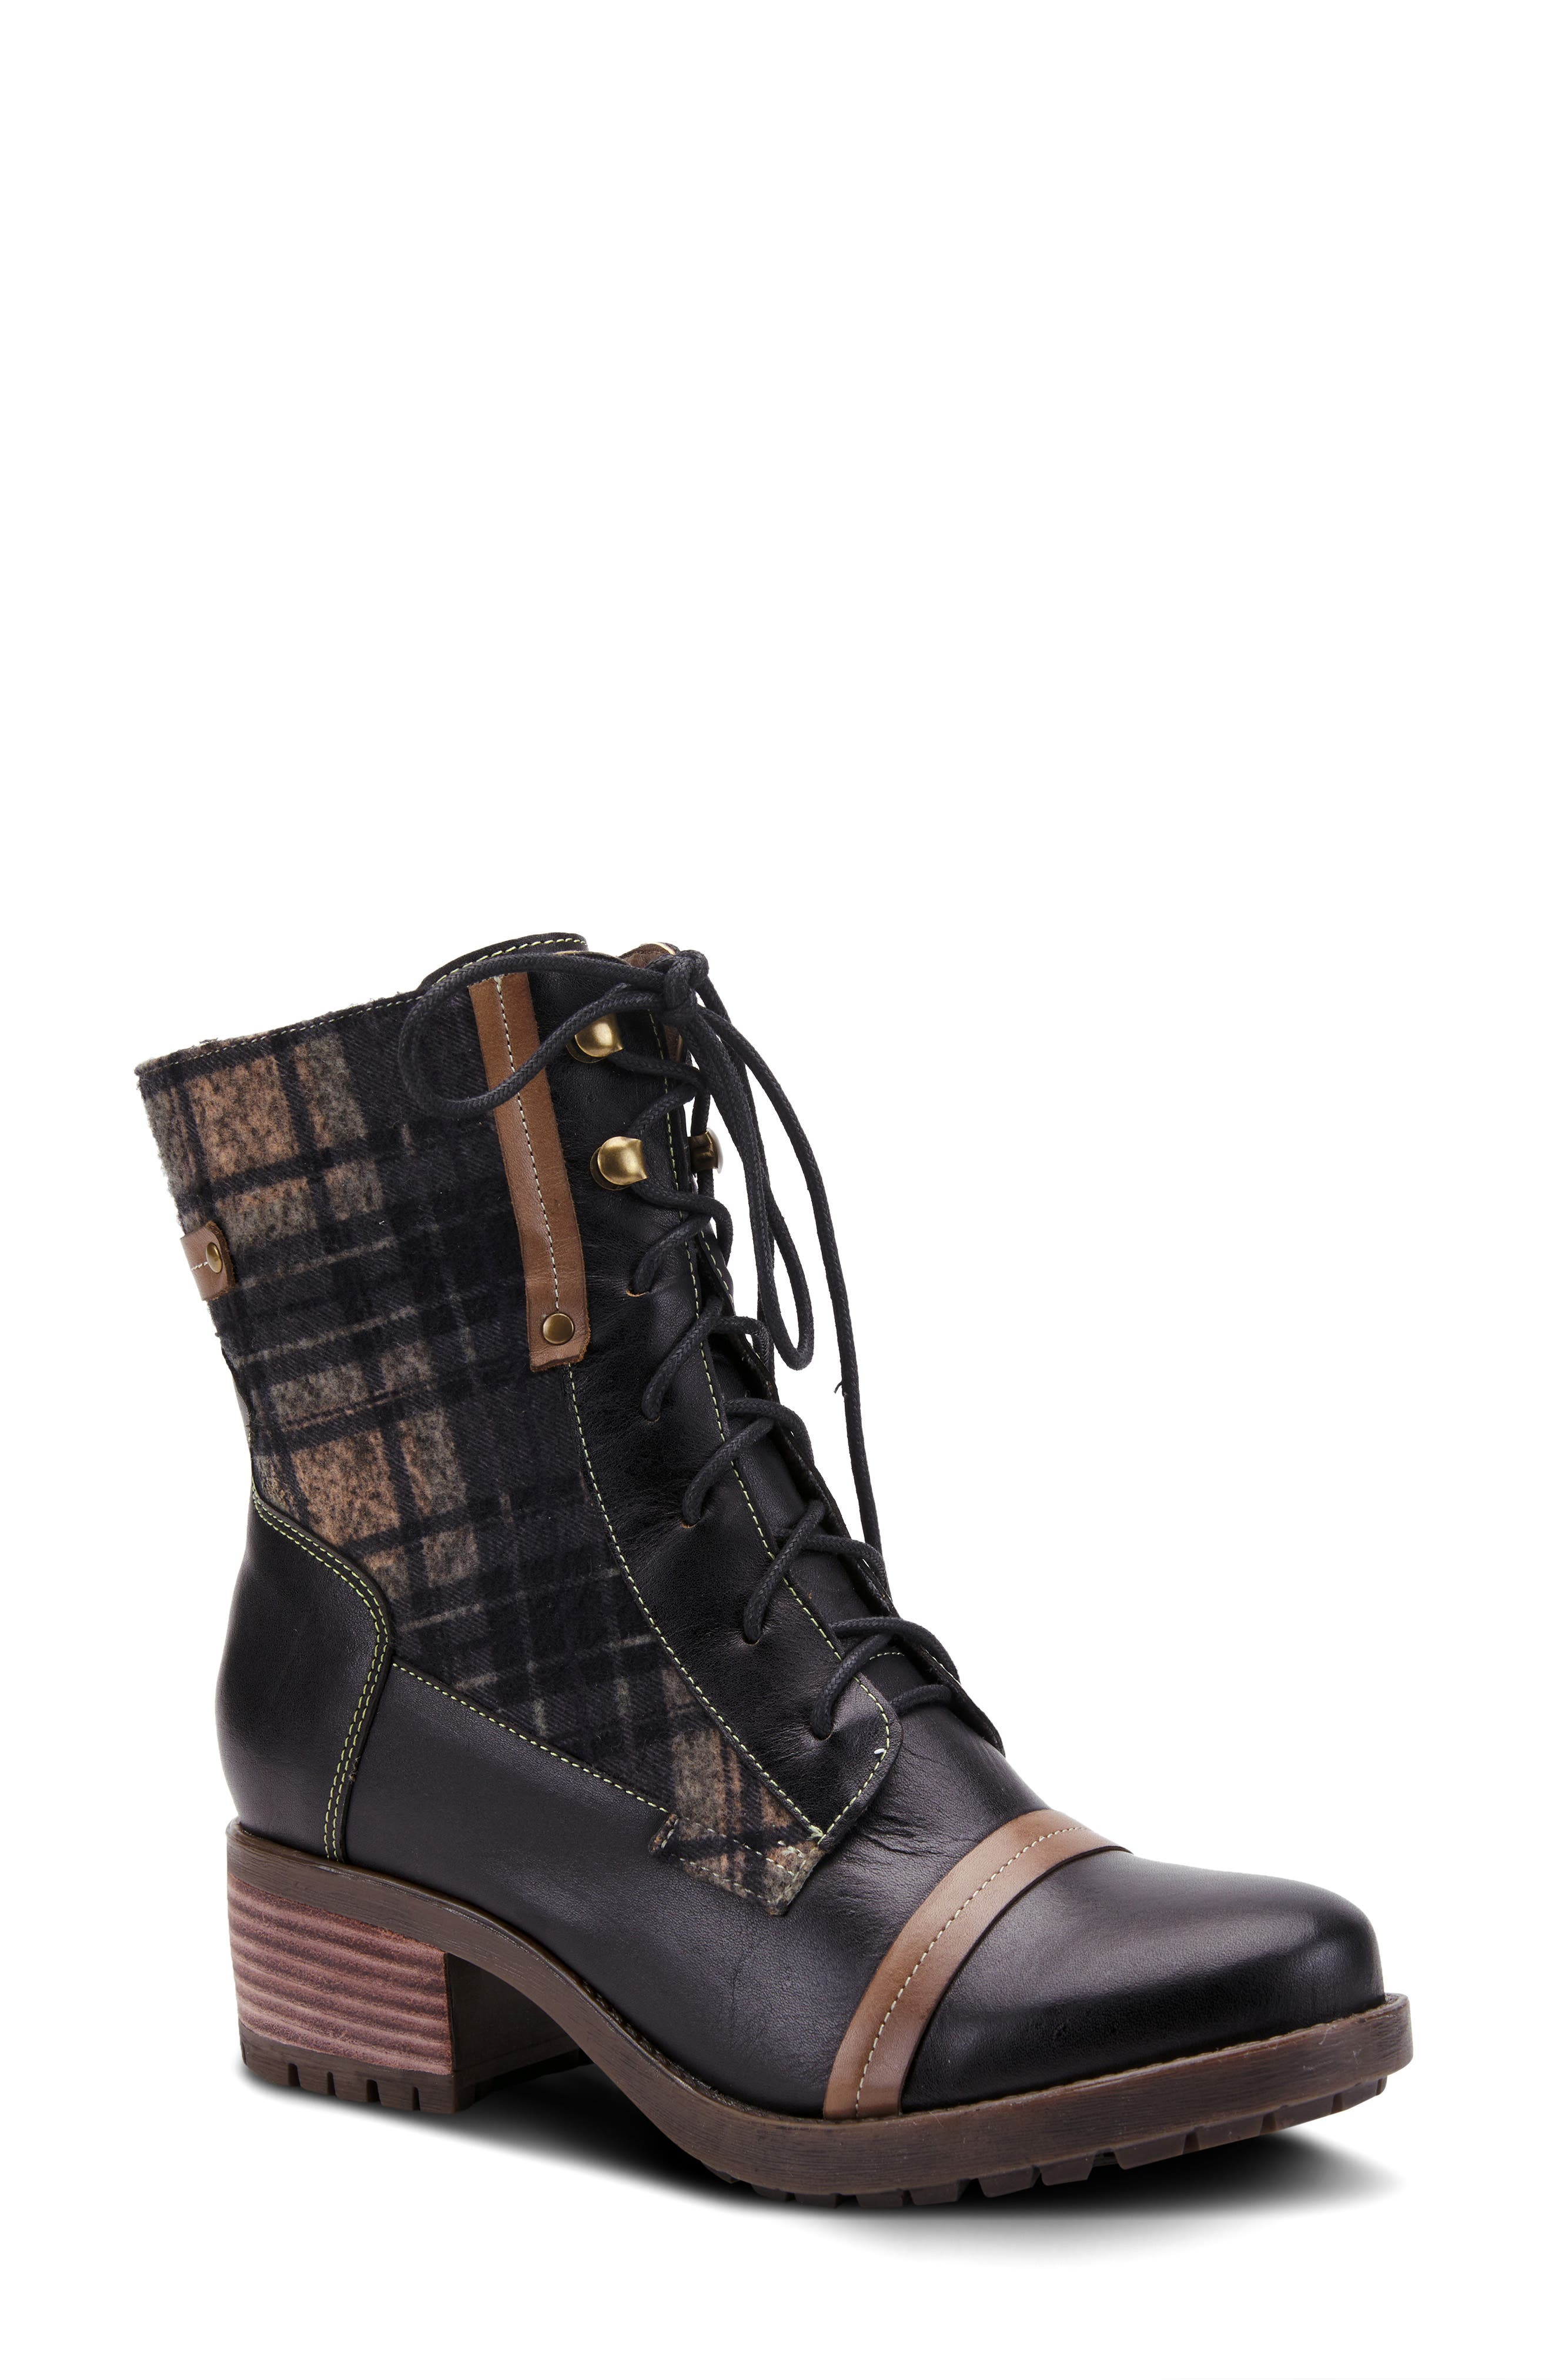 Hand-painted leather and plaid flannel create fashionable contrast on this workwear-inspired boot cushioned with a softly padded footbed. Style Name:L\\\'Artiste Eguine Lace-Up Bootie (Women). Style Number: 6117403. Available in stores.